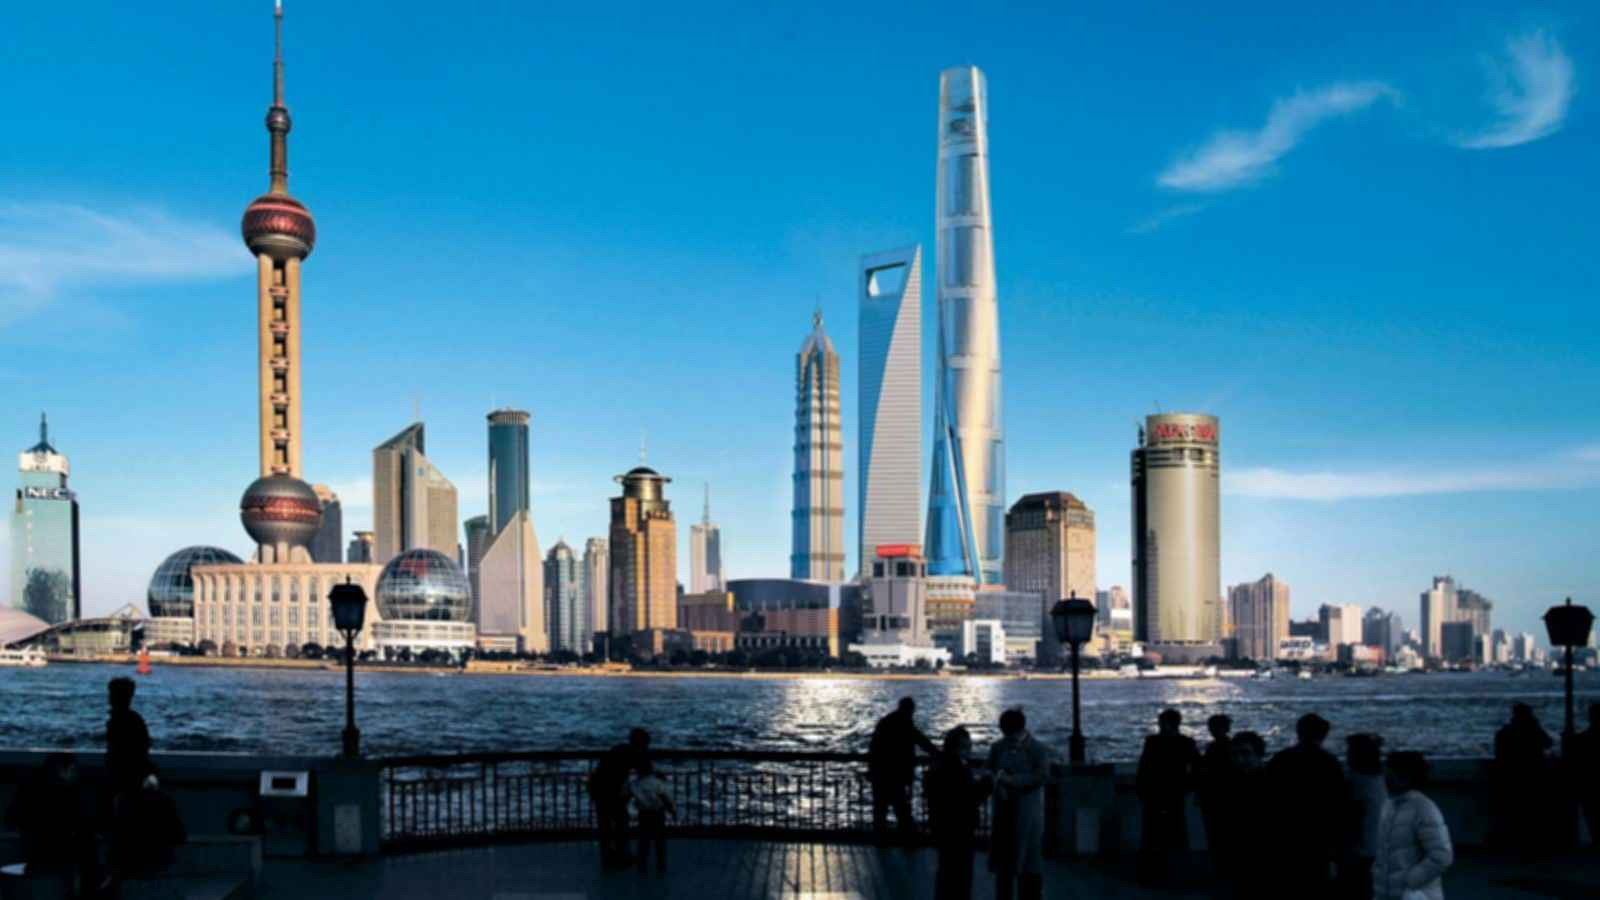 Shanghai Tower - Exterior